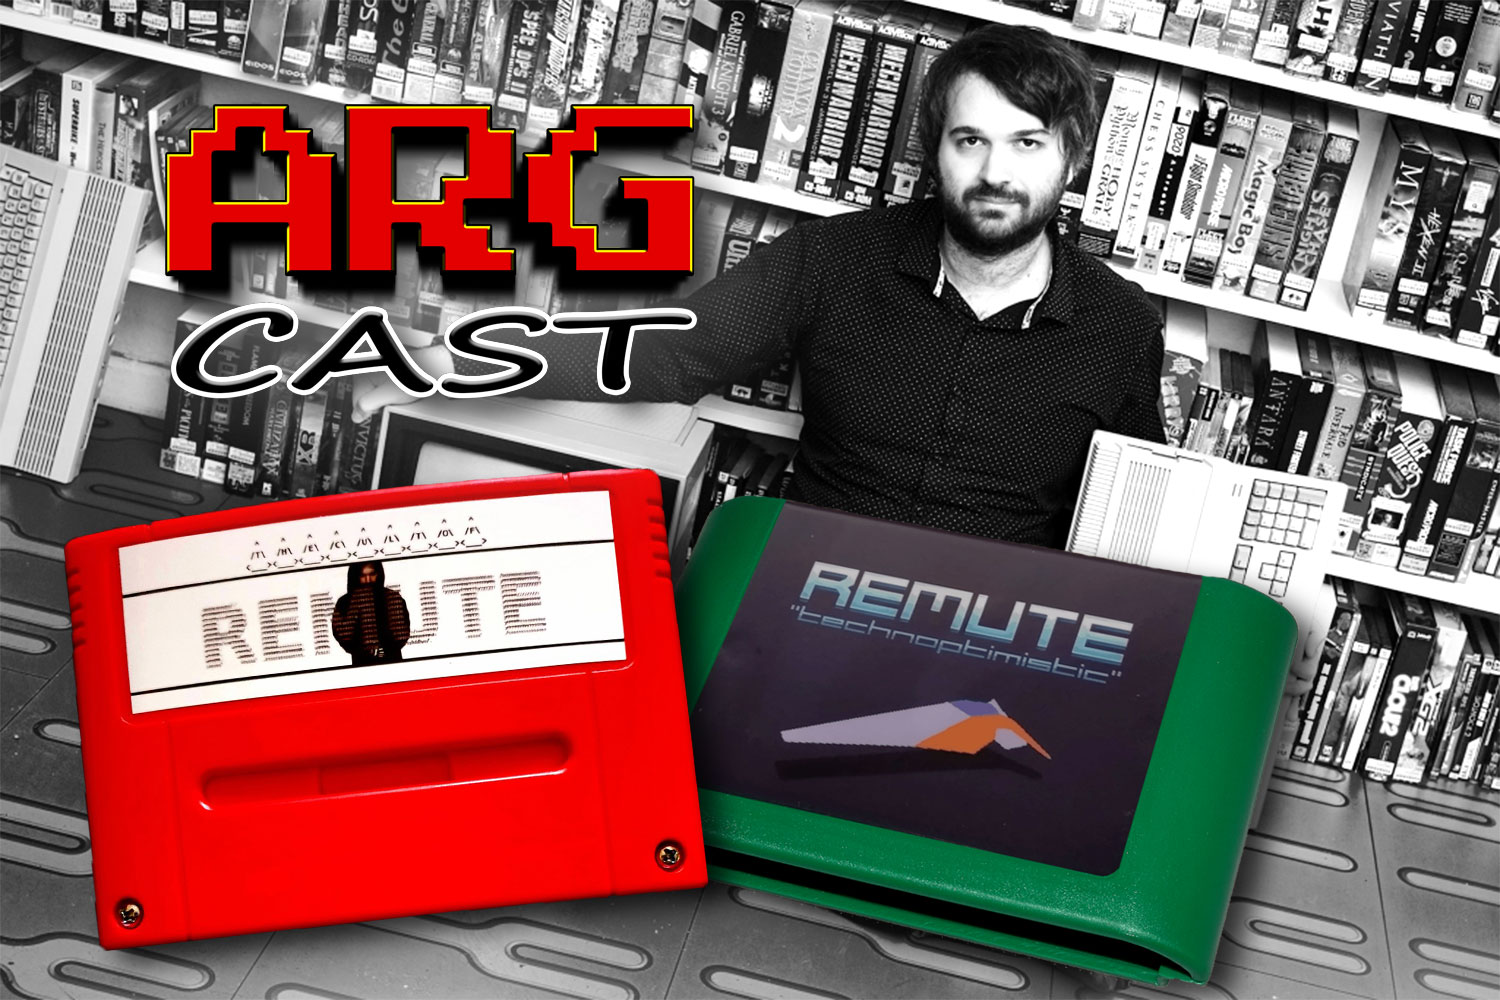 ARGcast Mini #36: Making Music on Gaming Carts w/ Remute